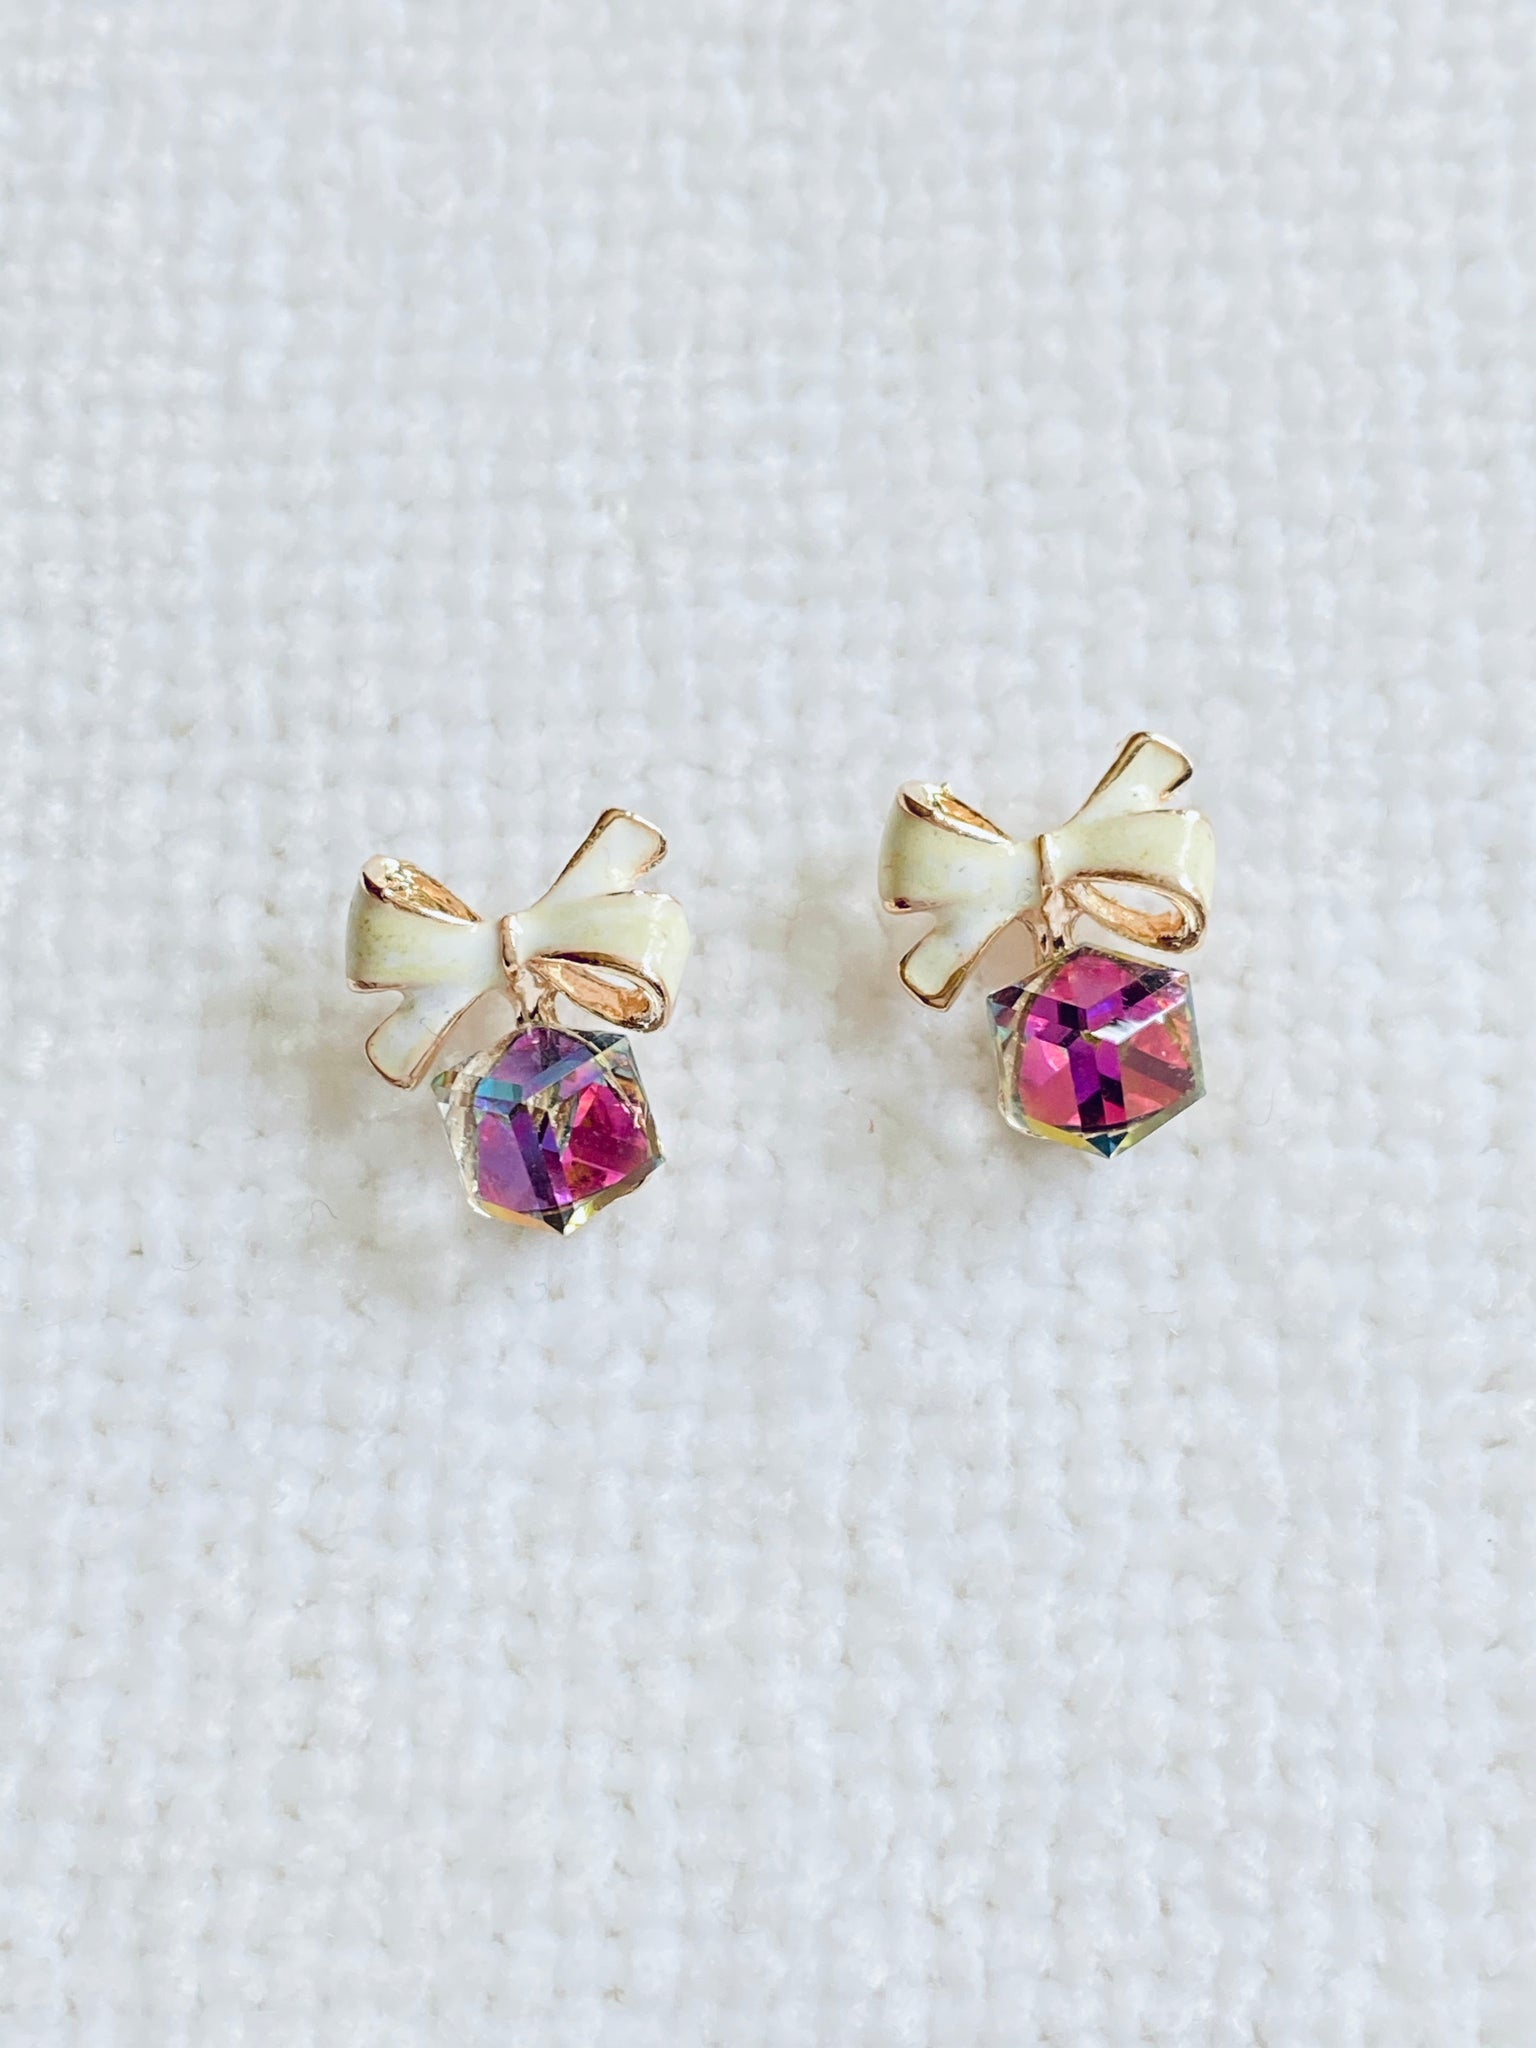 Ribbon Bow with Cubic Zirconia Stud Earrings